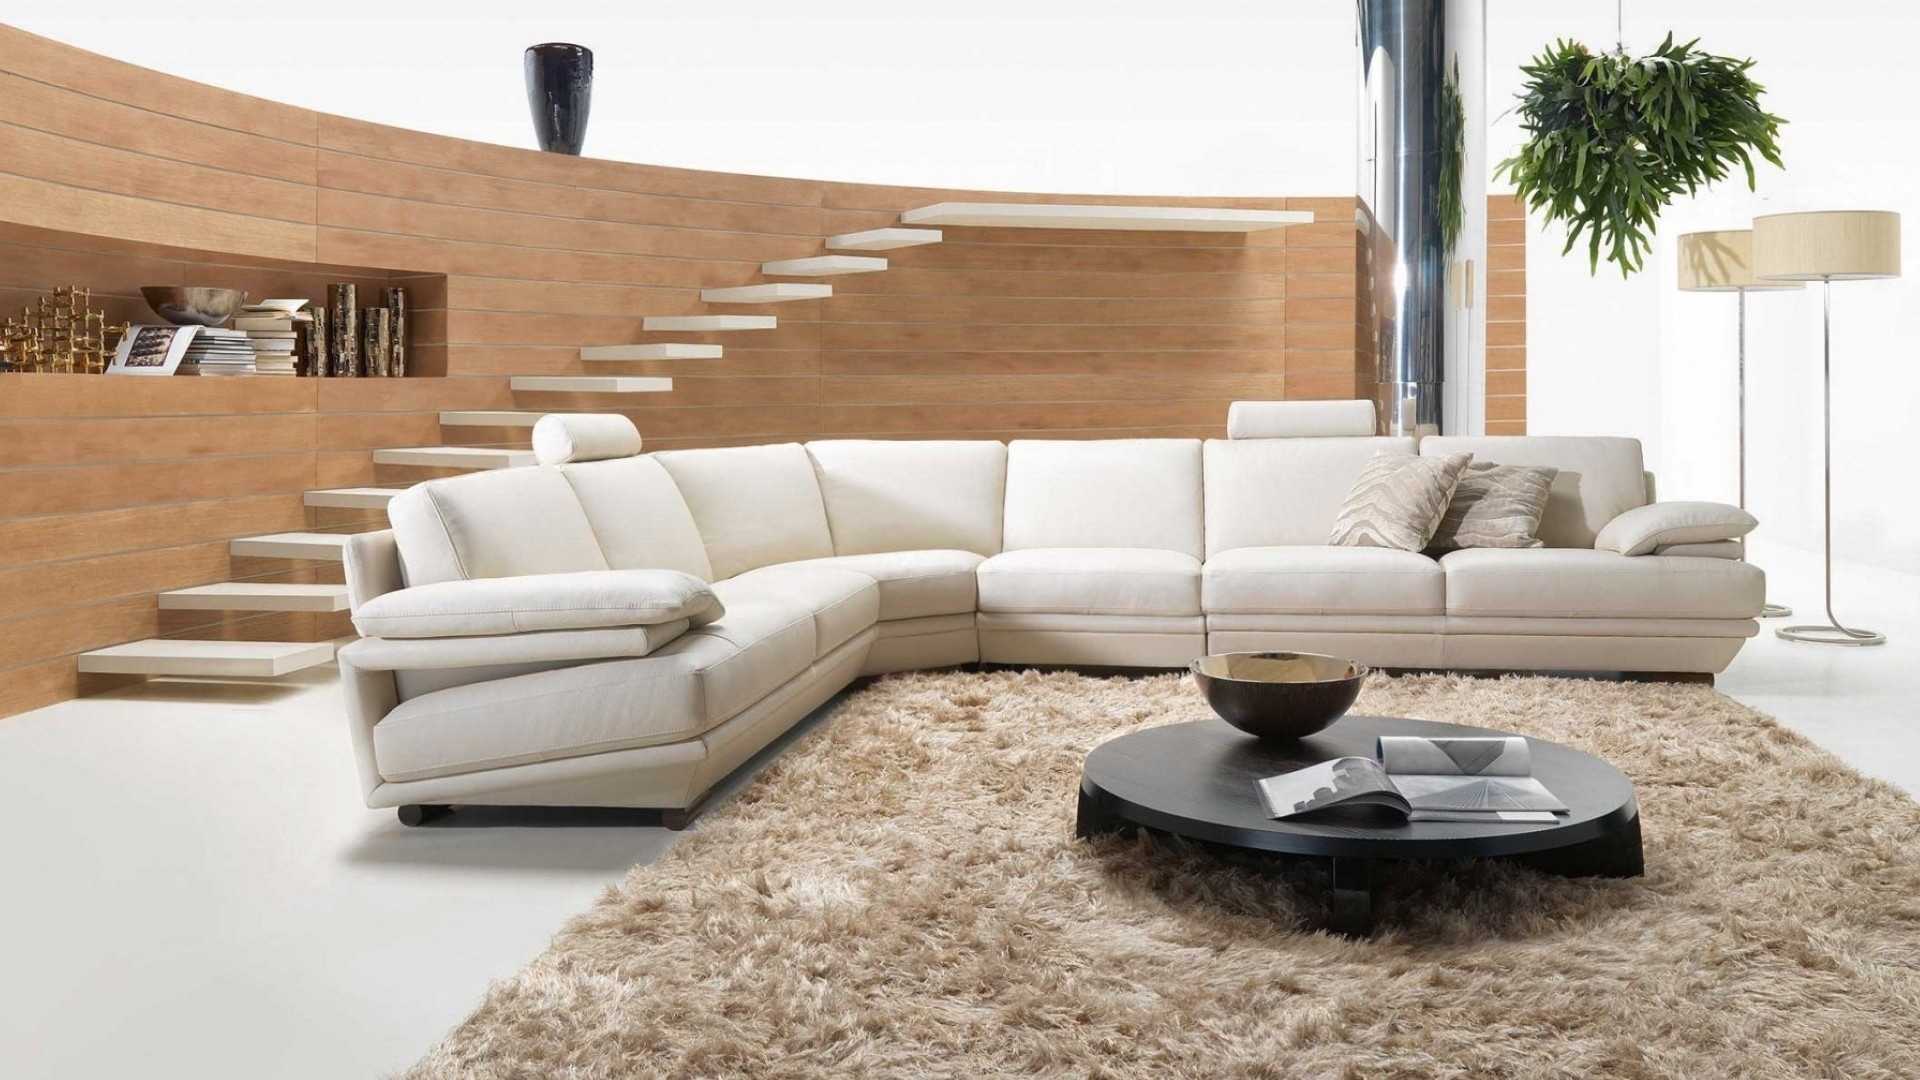 Natuzzi Sectional Sofa – Home And Textiles For Natuzzi Sectional Sofas (Image 7 of 10)